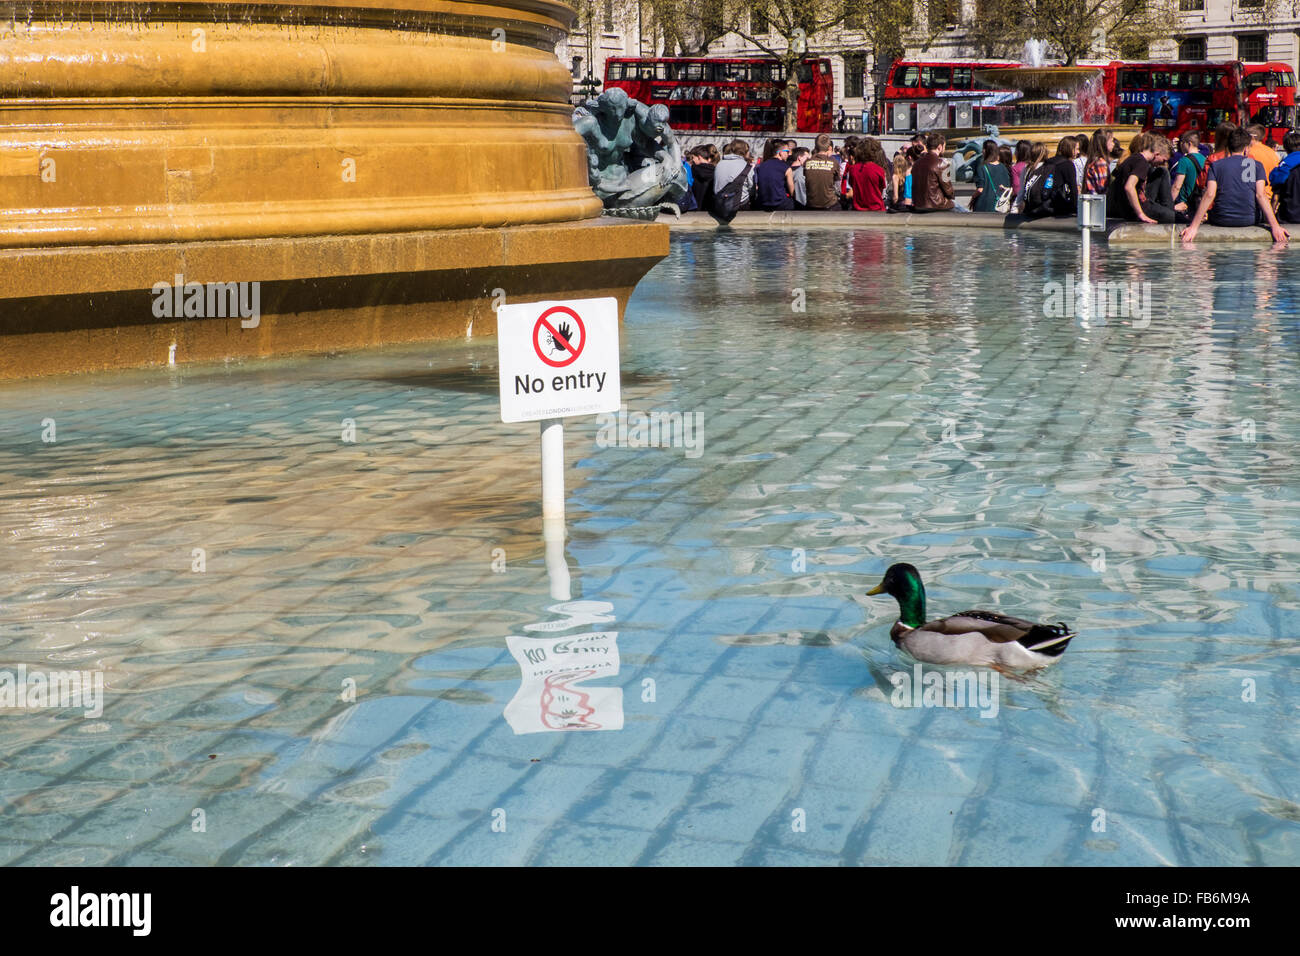 London,Trafalgar Square - duck defies no entry sign in fountain - Stock Image